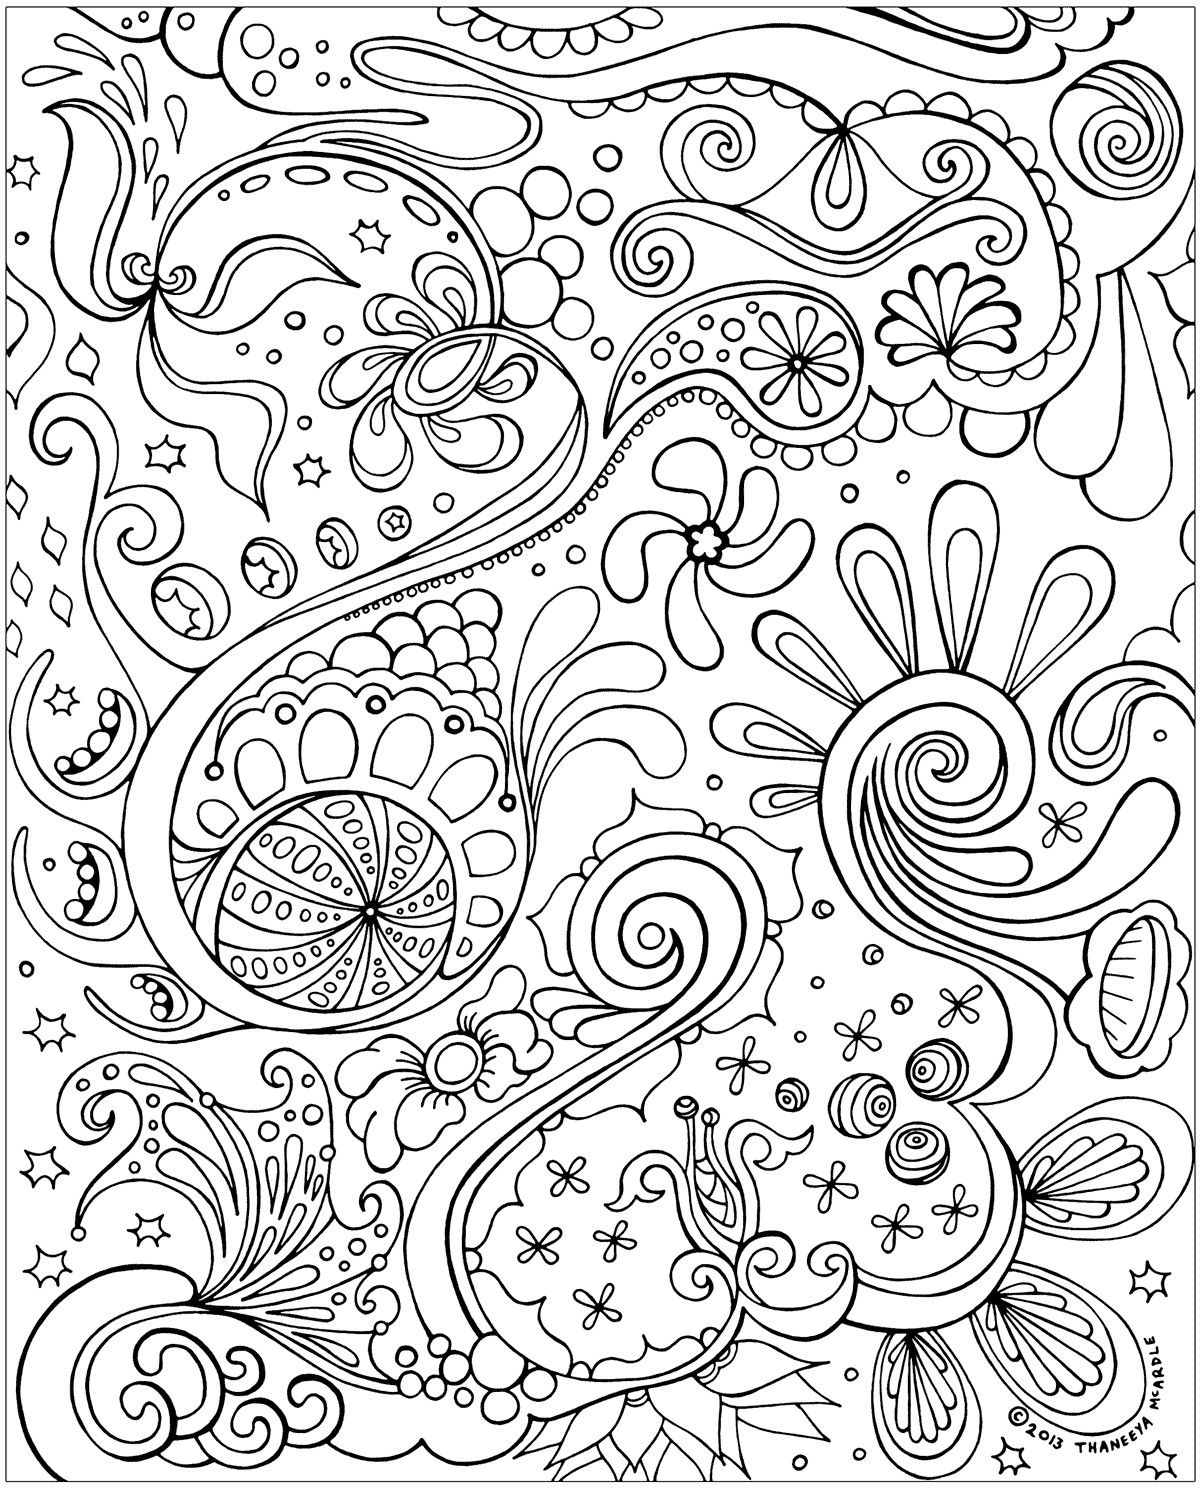 Free Coloring Pages for Adults | COLOR ALL THE THINGS | Pinterest ...